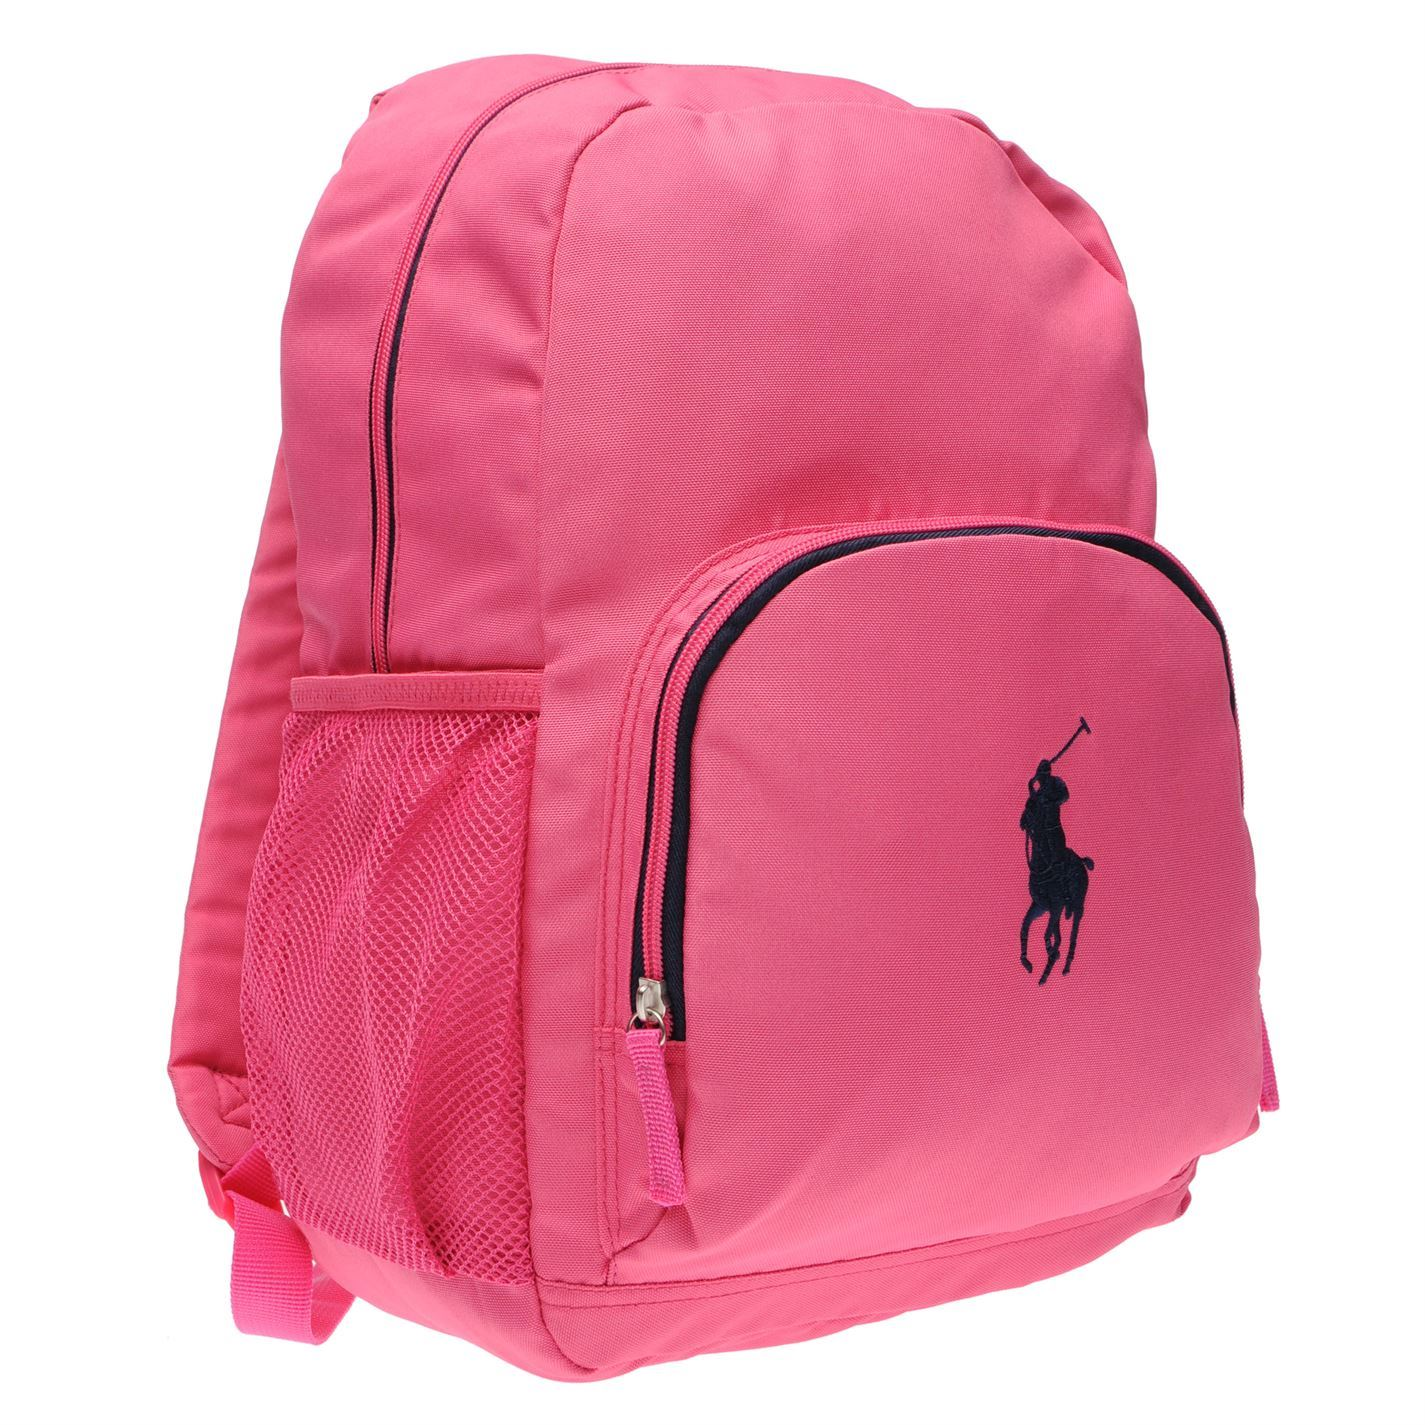 52f4d413b320 Pink New Campus Backpack- Fenix Toulouse Handball